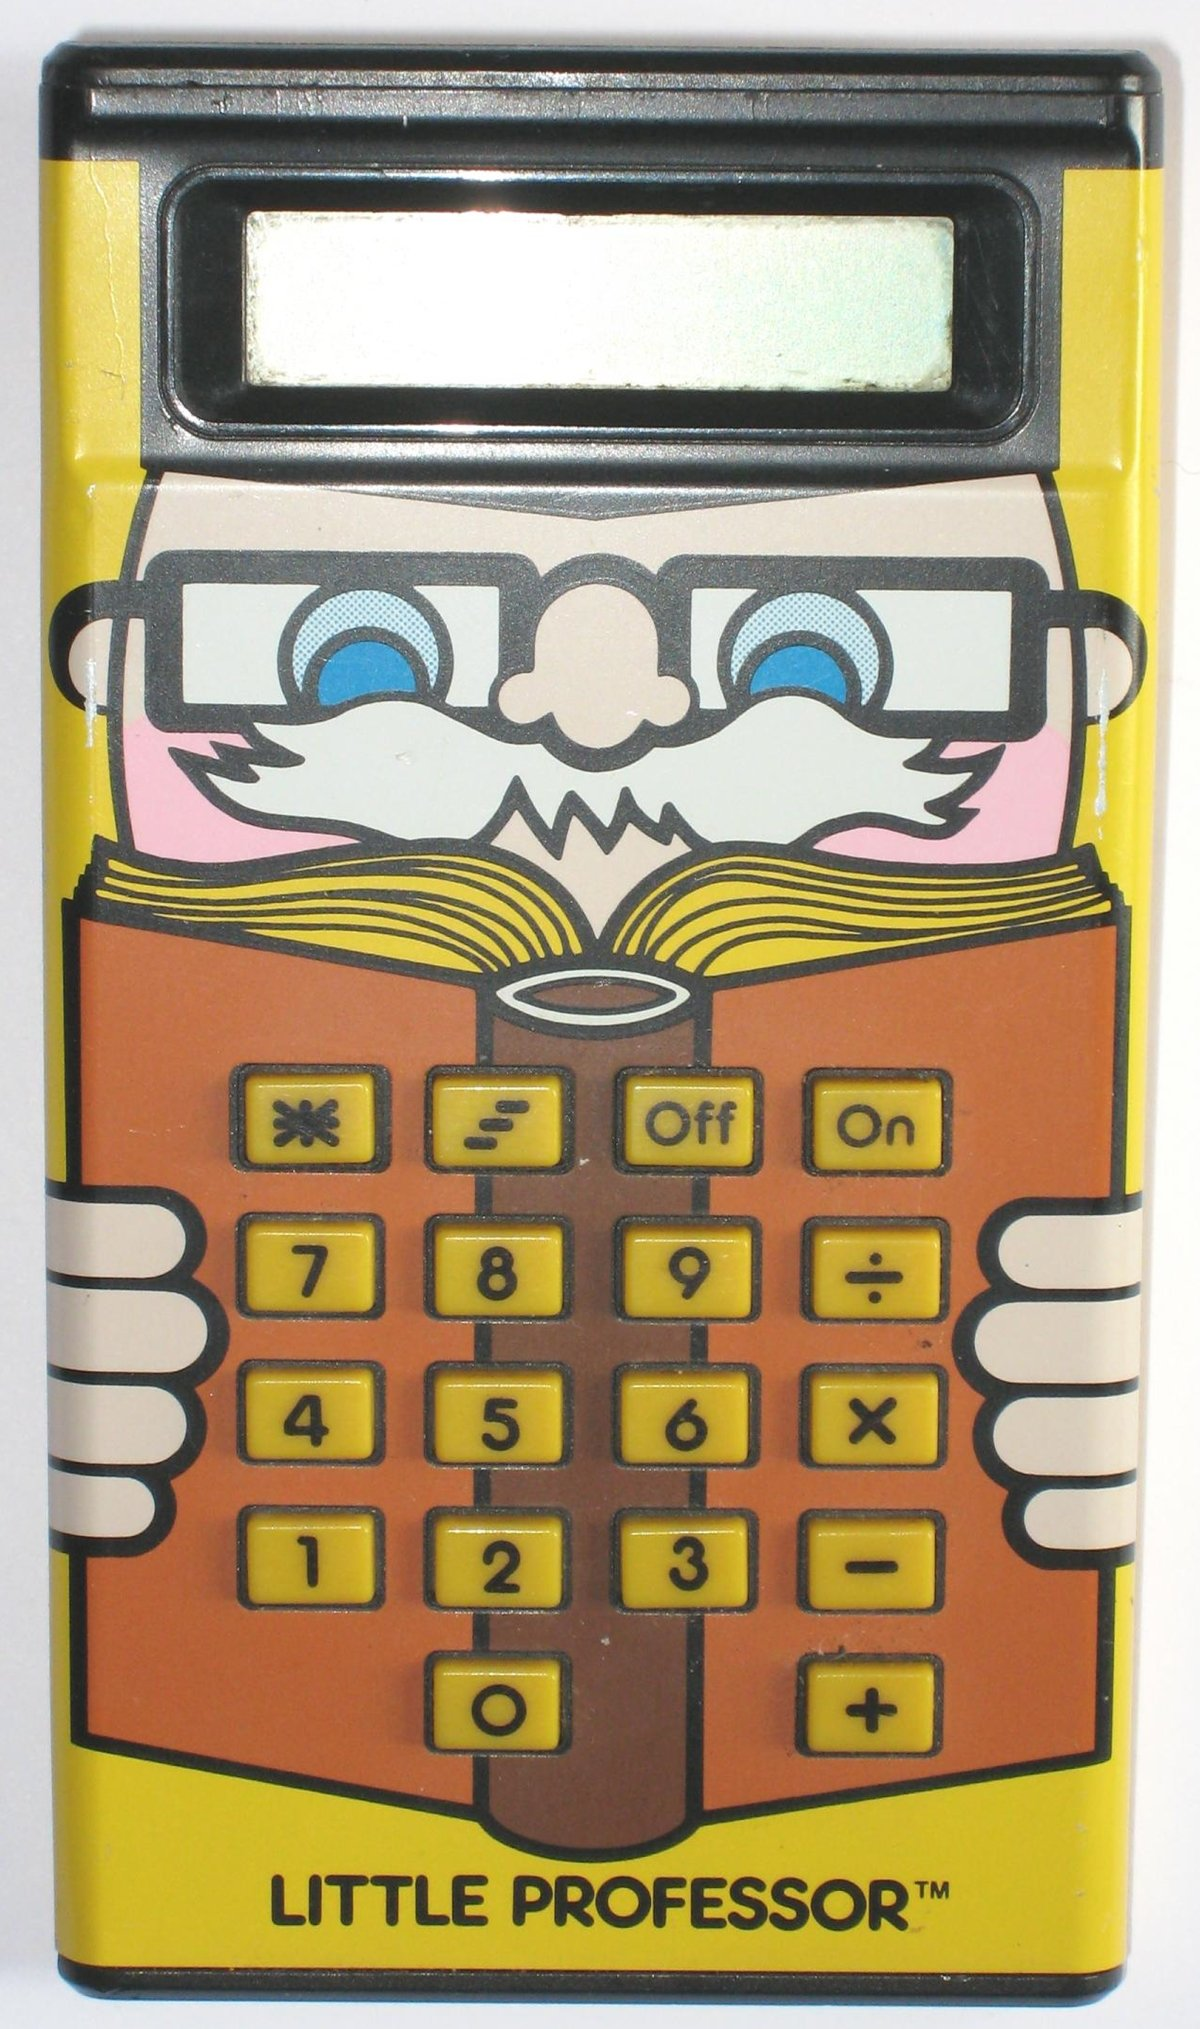 9 18 If You Owned At Least 10 Of These 18 Items Then You're A TRUE 80s Child!